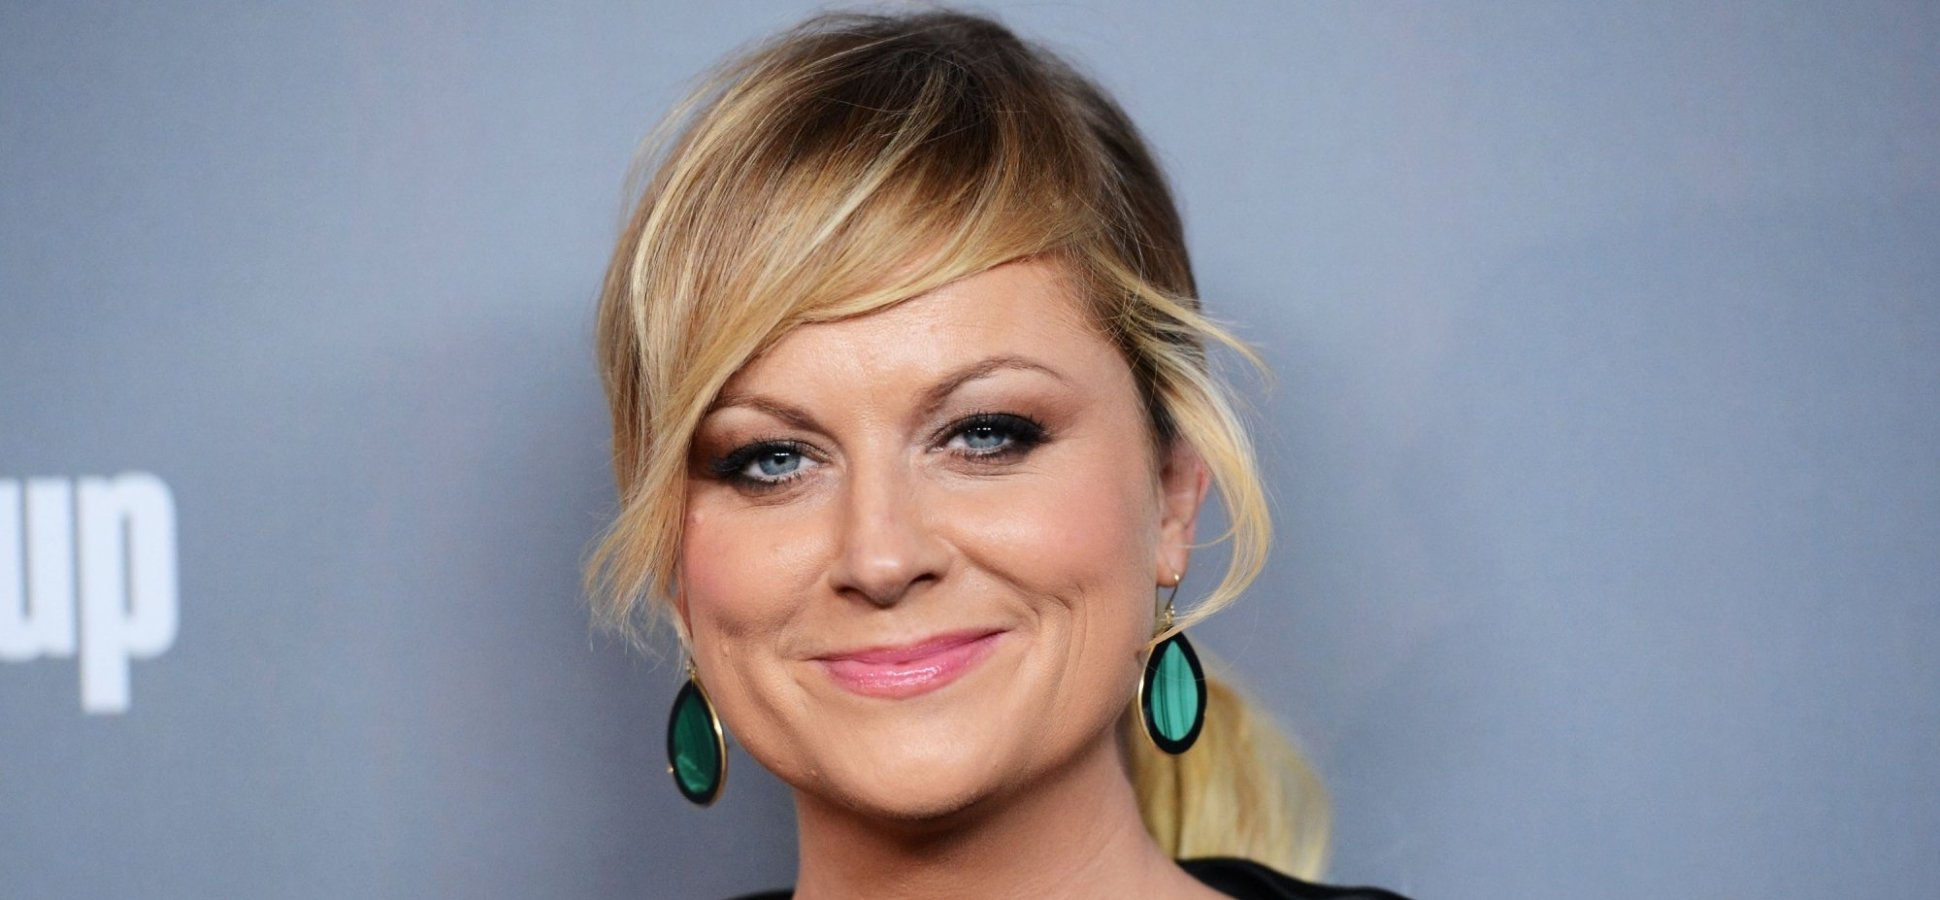 Amy Poehler Did 1 Brilliant Thing When Filming 'Parks and Rec' That All Leaders Can Learn From